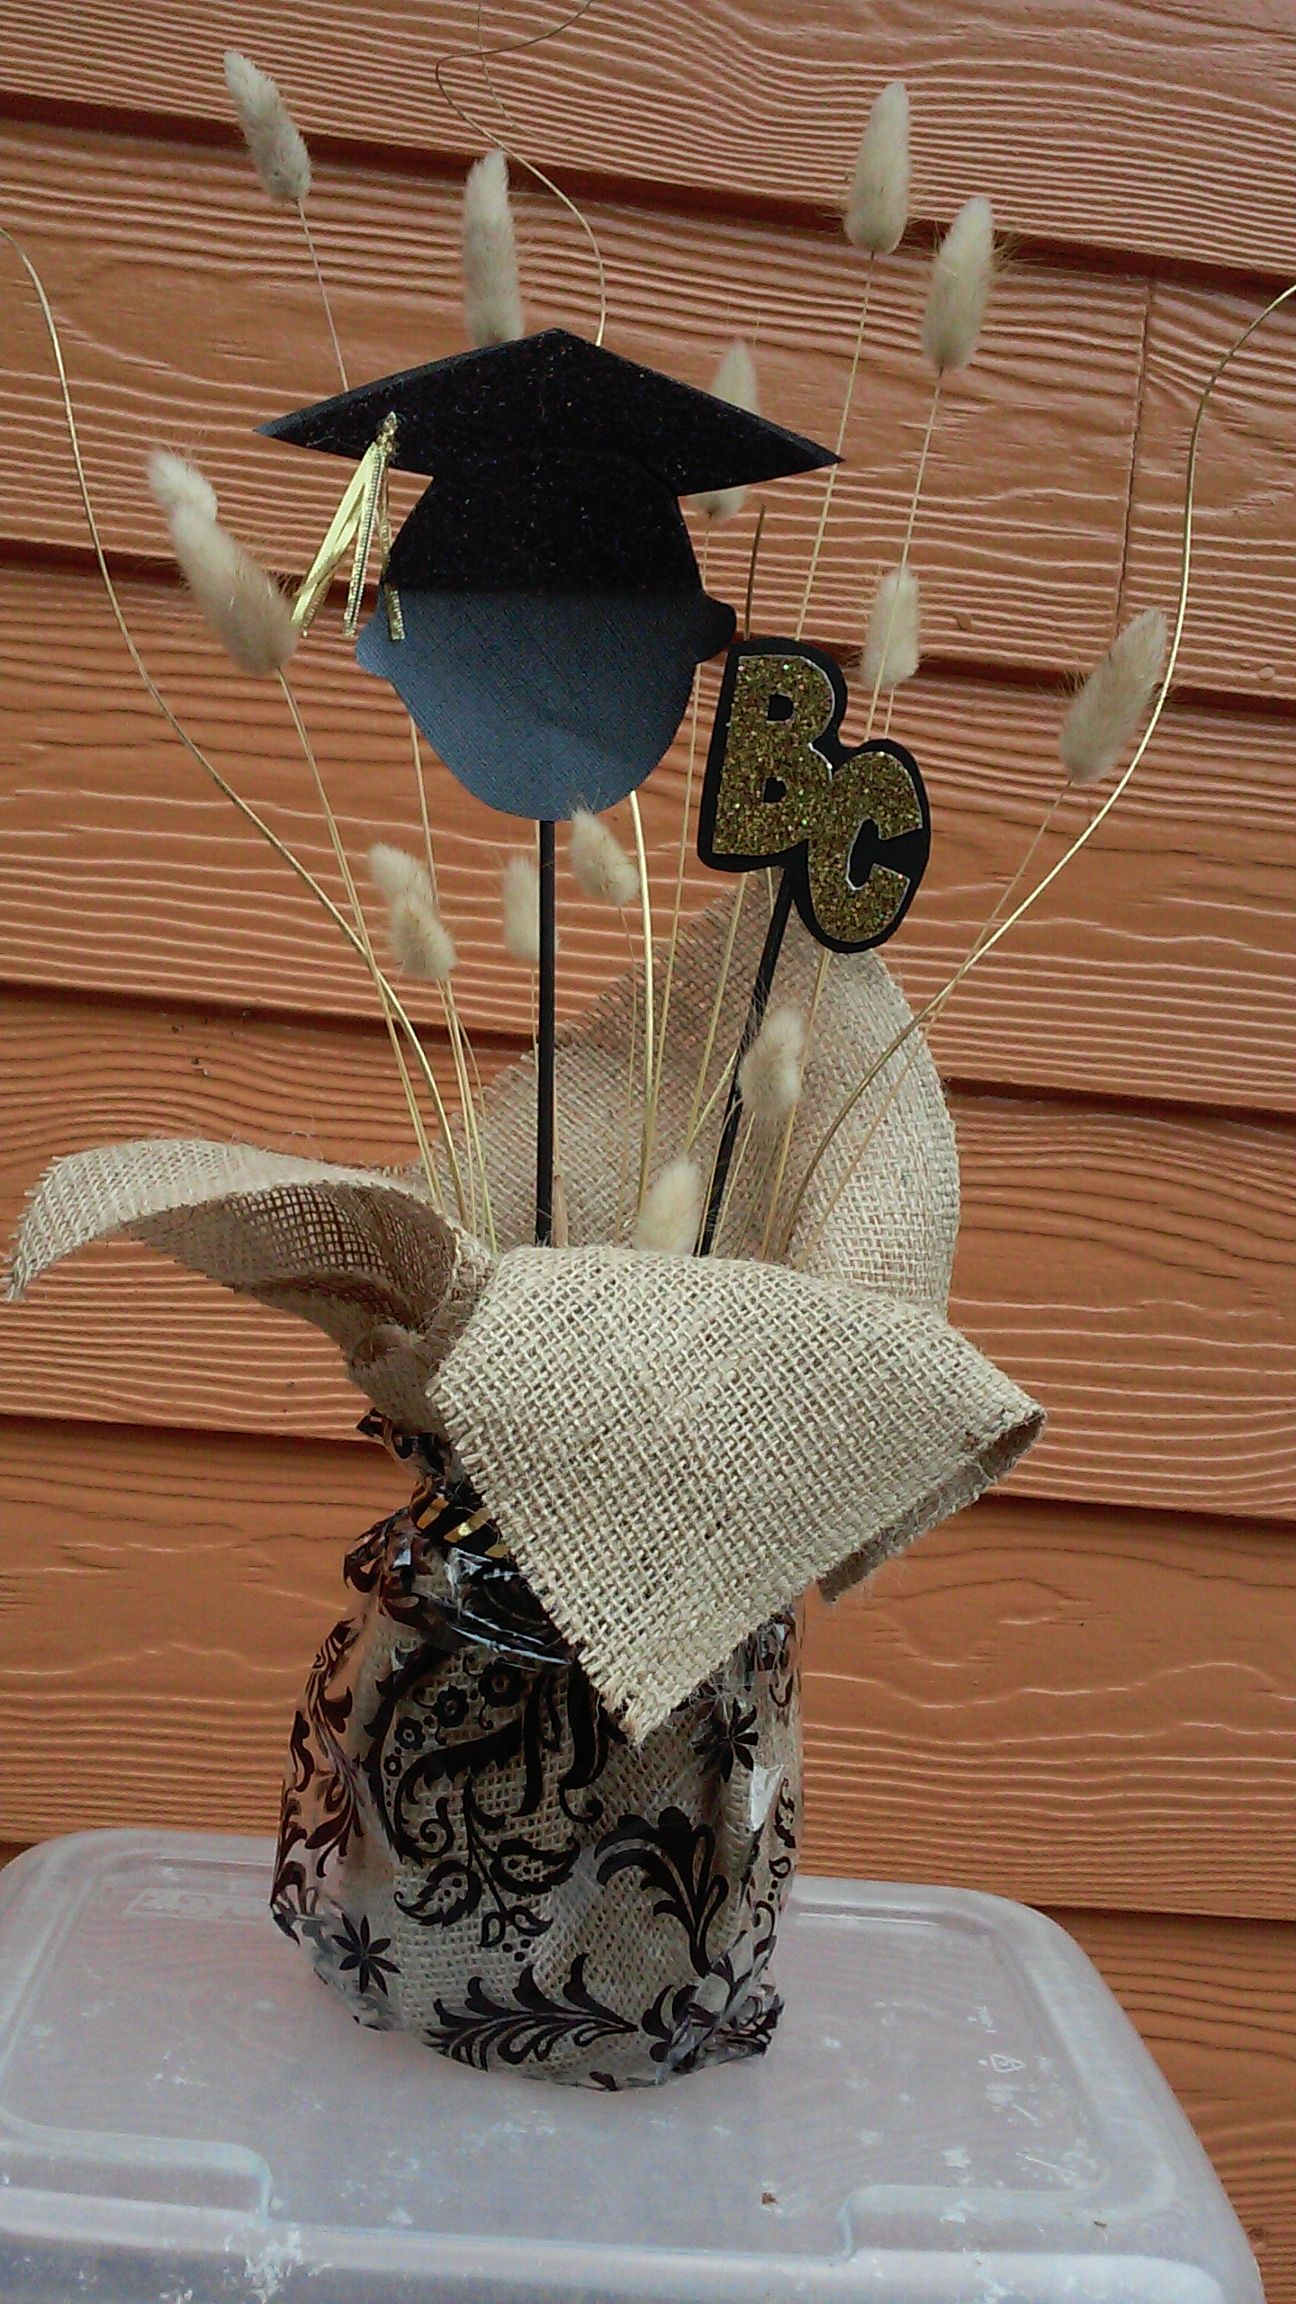 Graduation Center Piece. Mason jar filled with sand,  burlap, cellophane gift bag, ribbon, and added decorations.